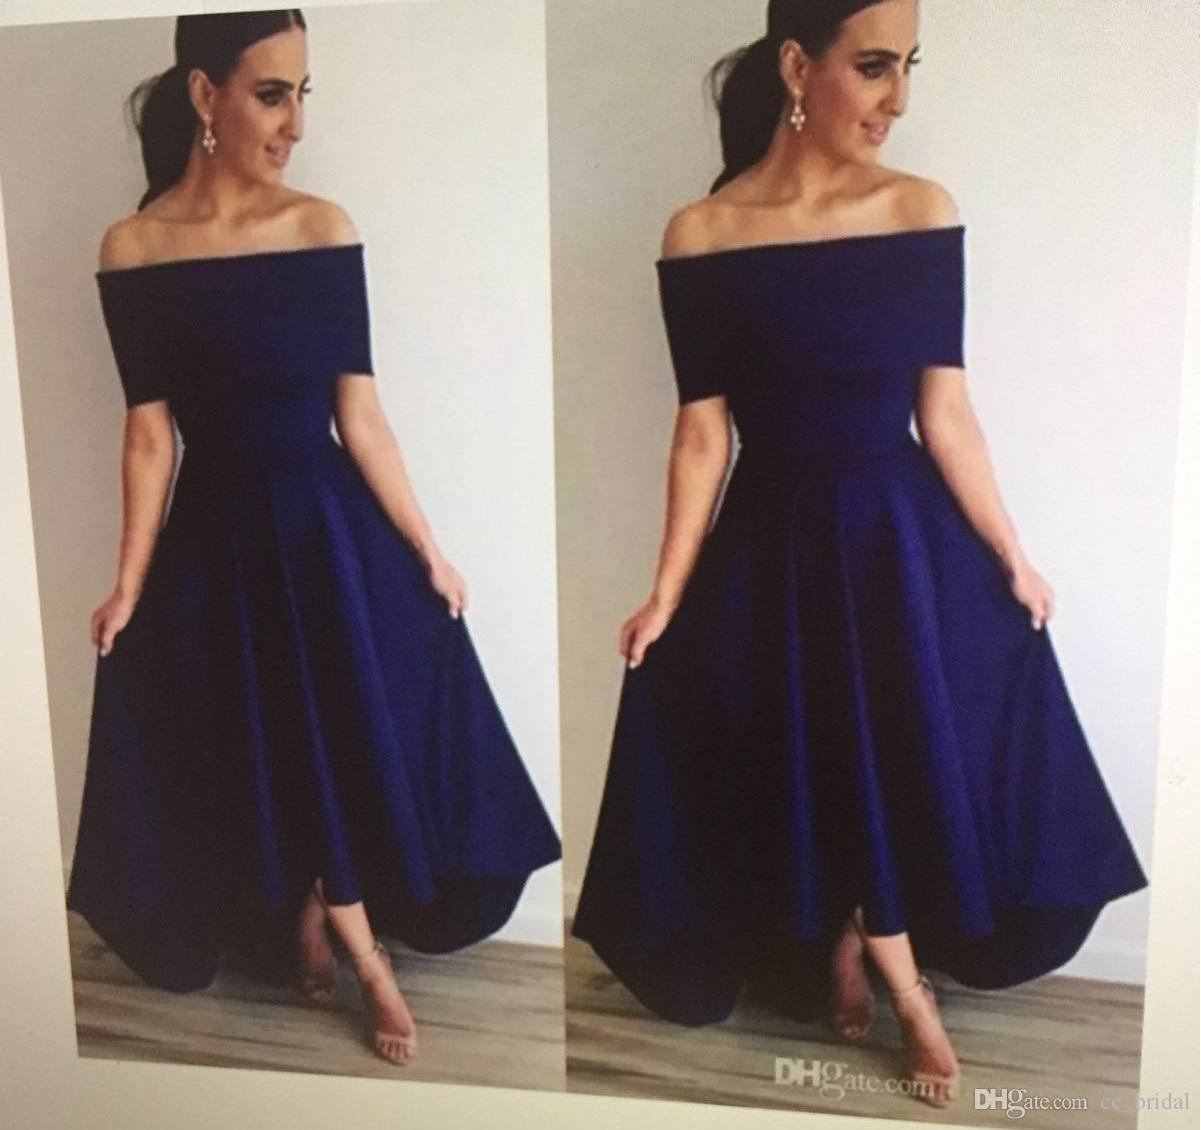 Strapless navy blue bridesmaid dresses 2017 with sexy off shoulder strapless navy blue bridesmaid dresses 2017 with sexy off shoulder maid of honor dress for weddings cheap hi low dresses for wedding guest cheap bridesmaid ombrellifo Gallery